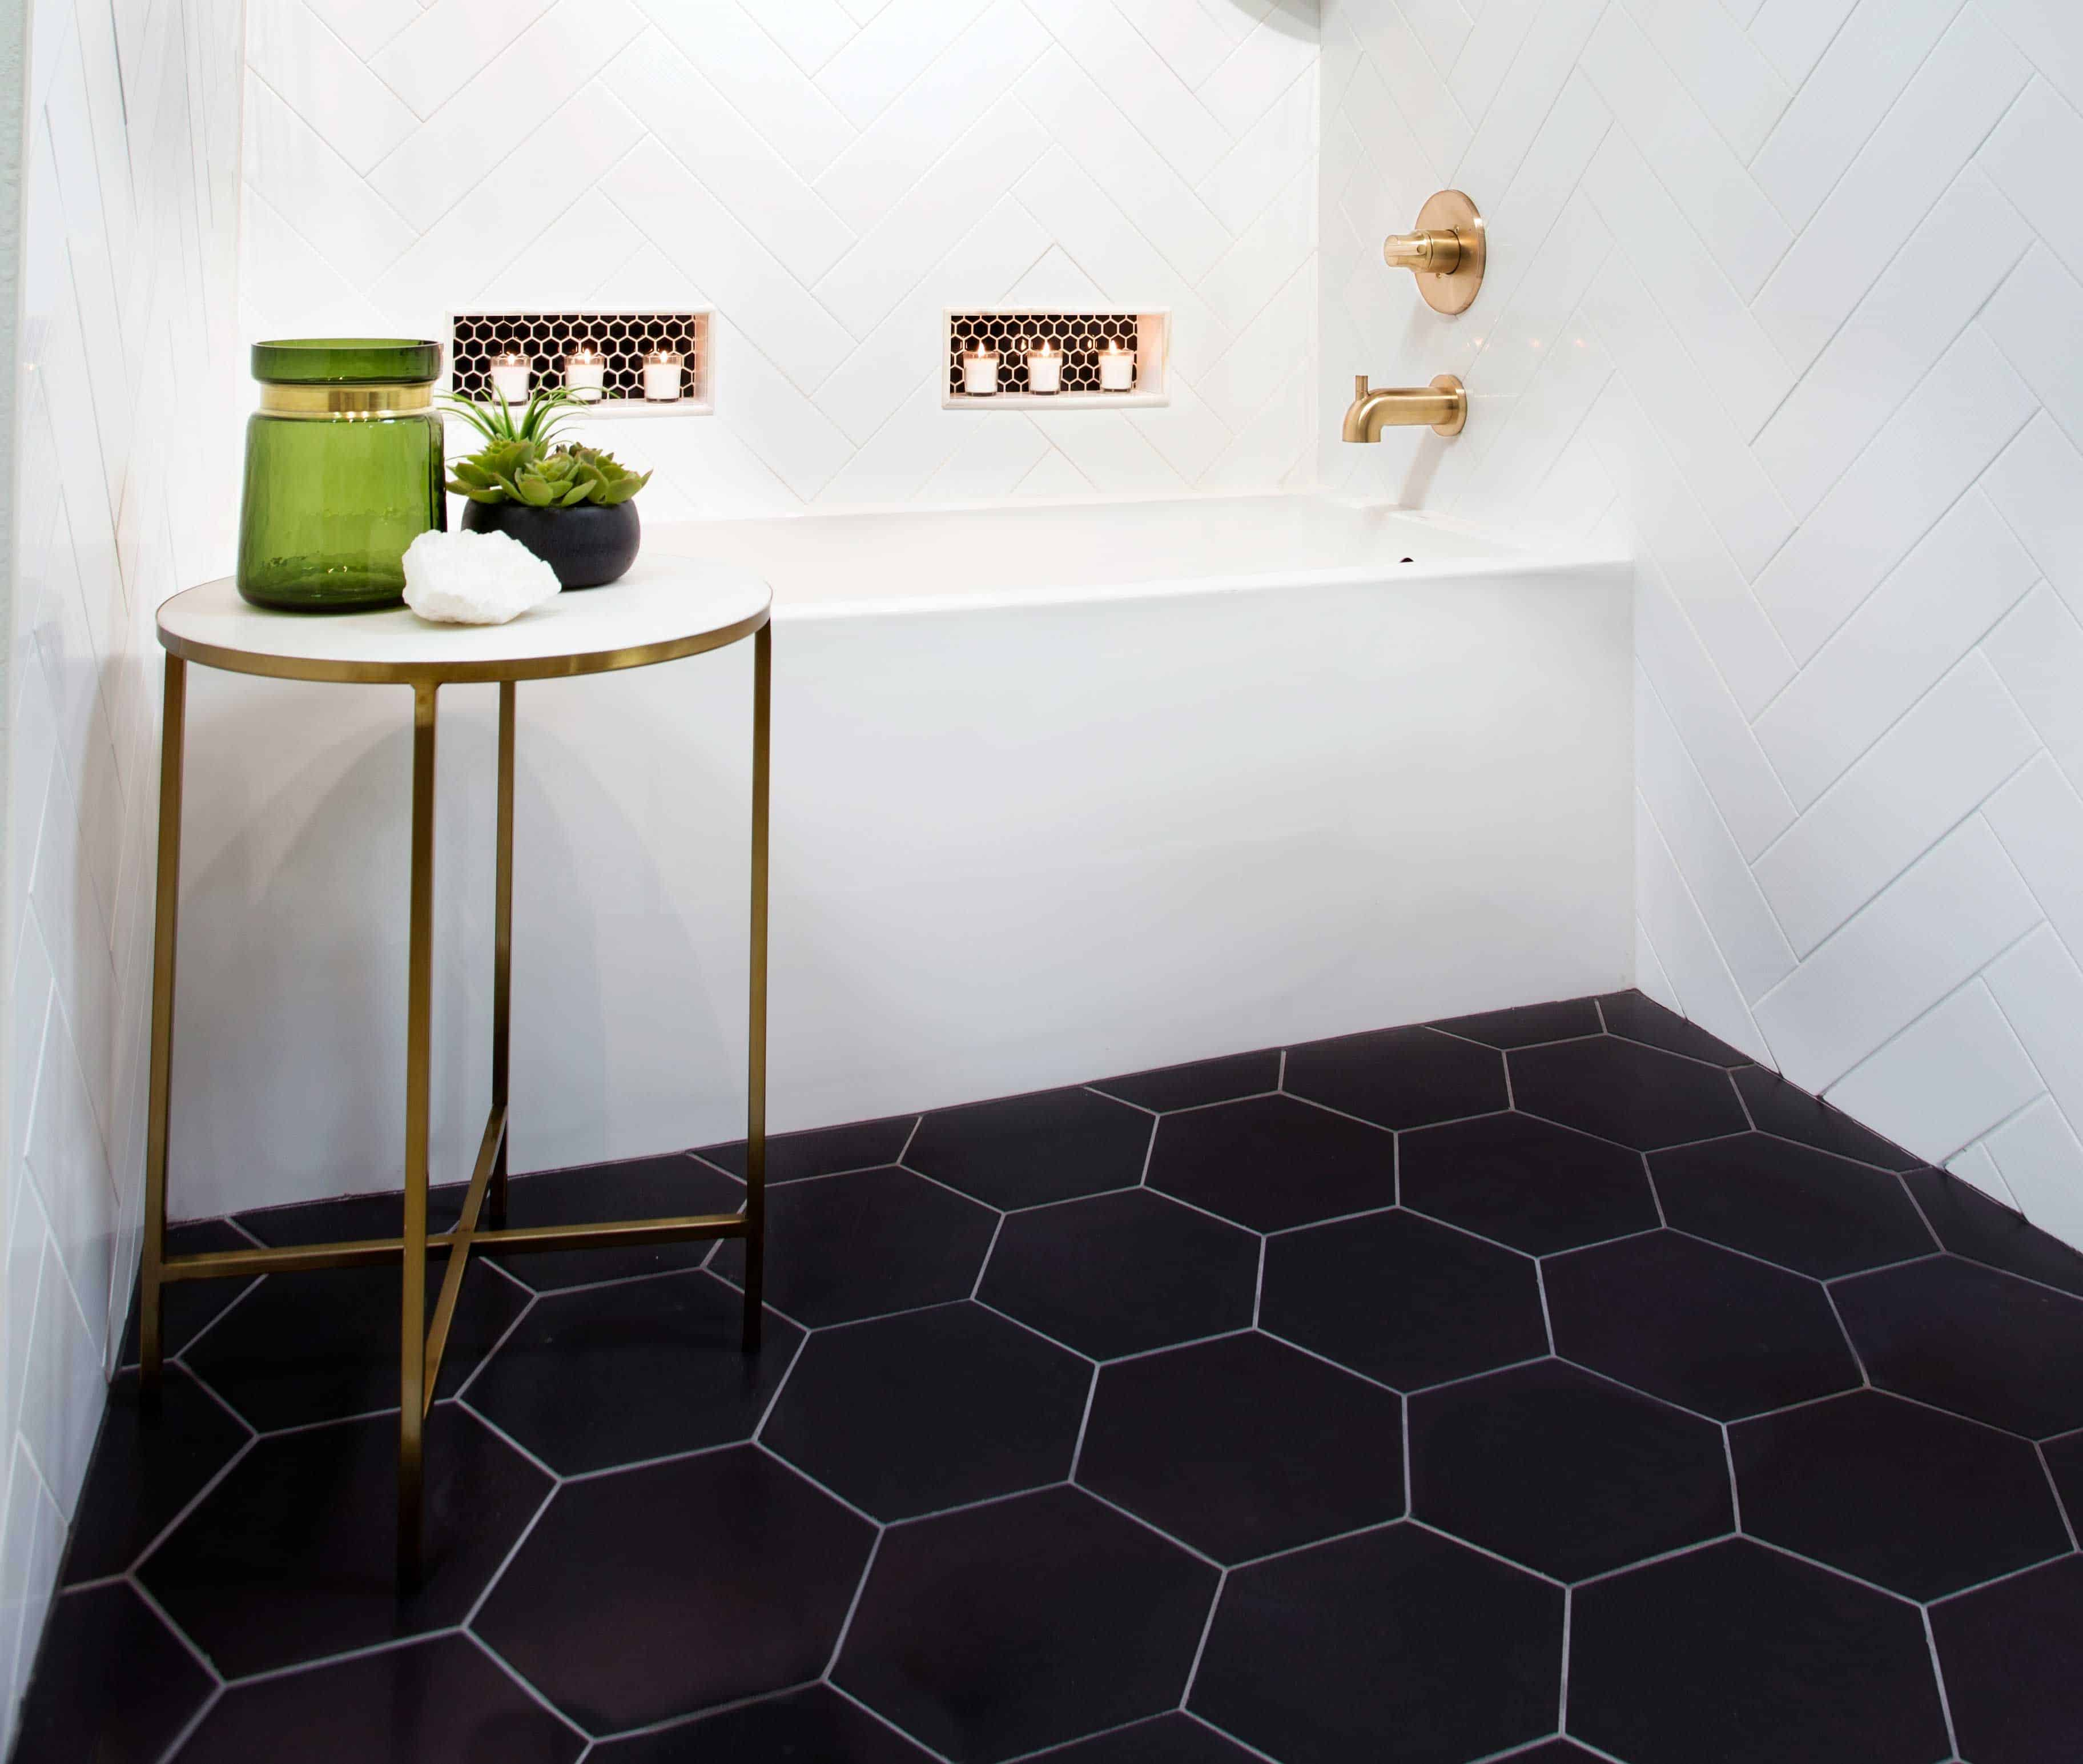 hexagon tiles in bathroom Bathroom Tile Ideas That Are Sure To Inspire Your Next Renovation